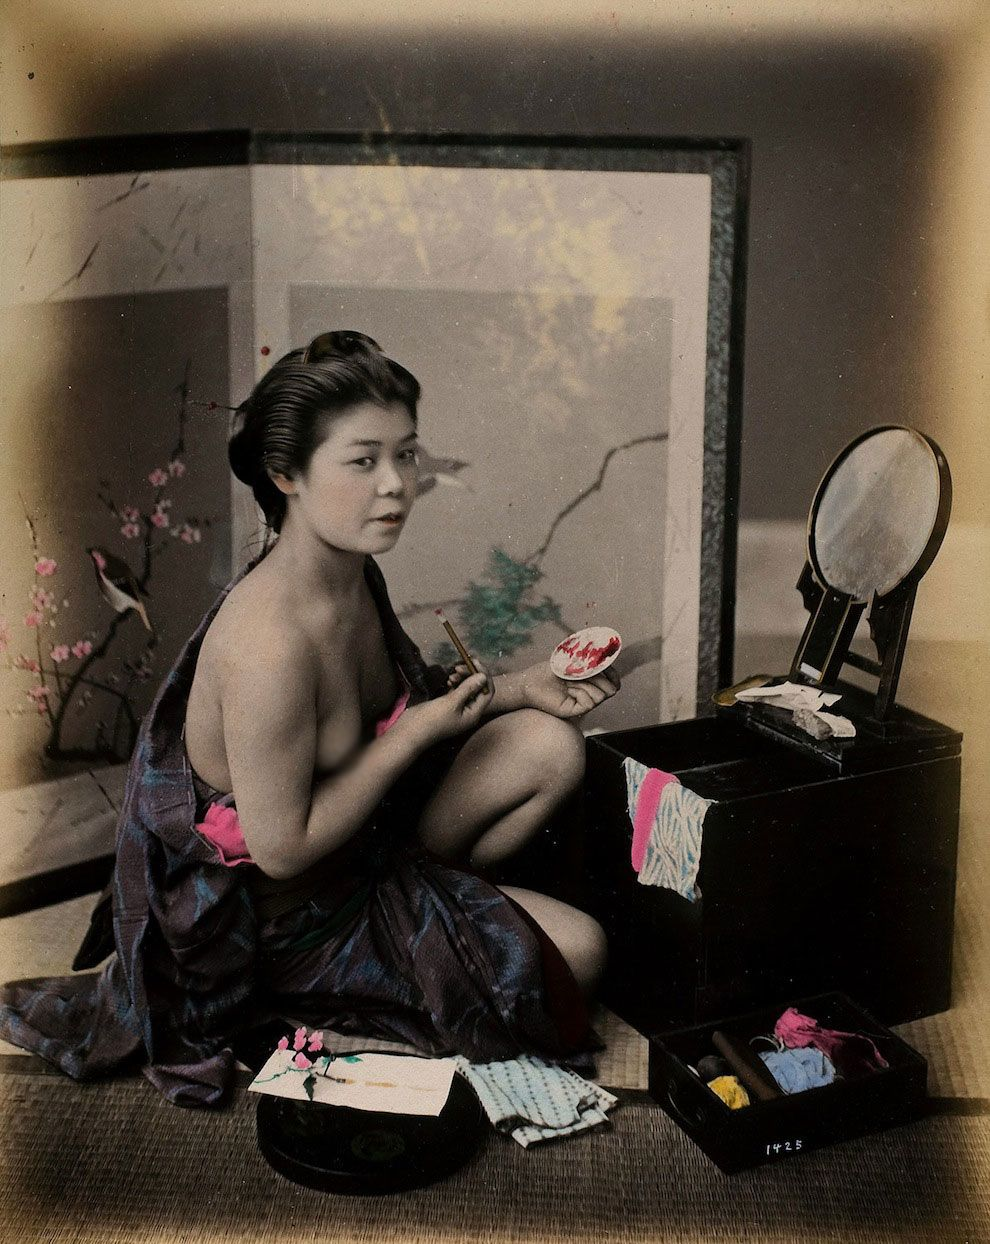 <b>A glimpse at what is known as the geisha golden age — and the kimonos are absolutely striking.</b>